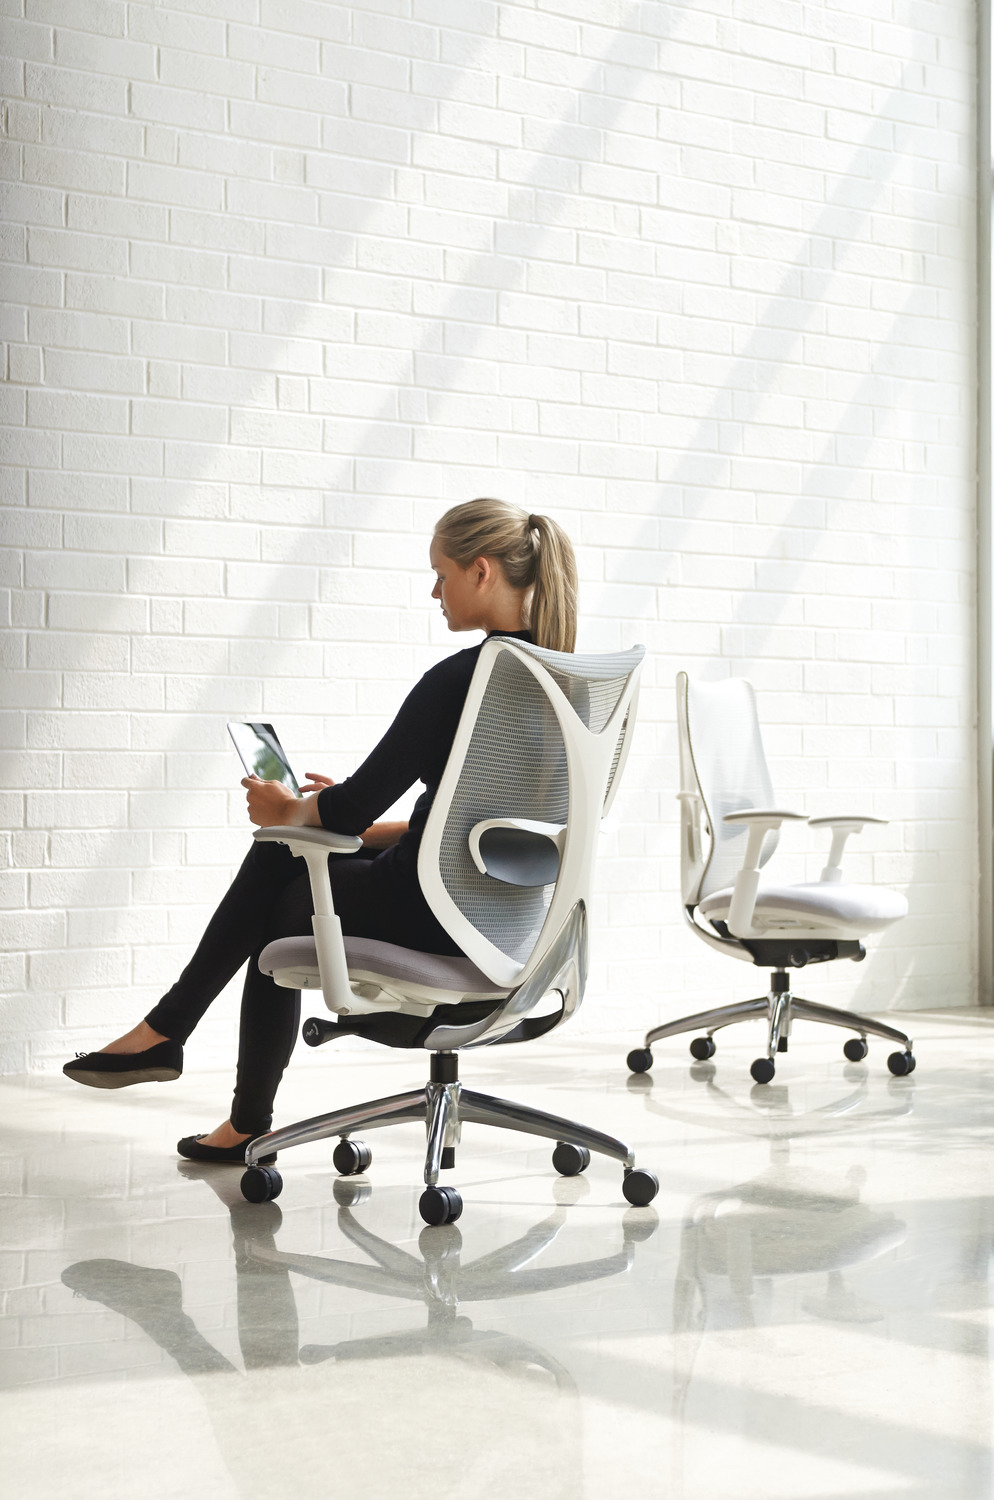 SabrinaTask Chair - 3/4 View Group - Basalt Mesh - Very White Frame - Polished Aluminum Base - Height Adjustable Lumbar.tif